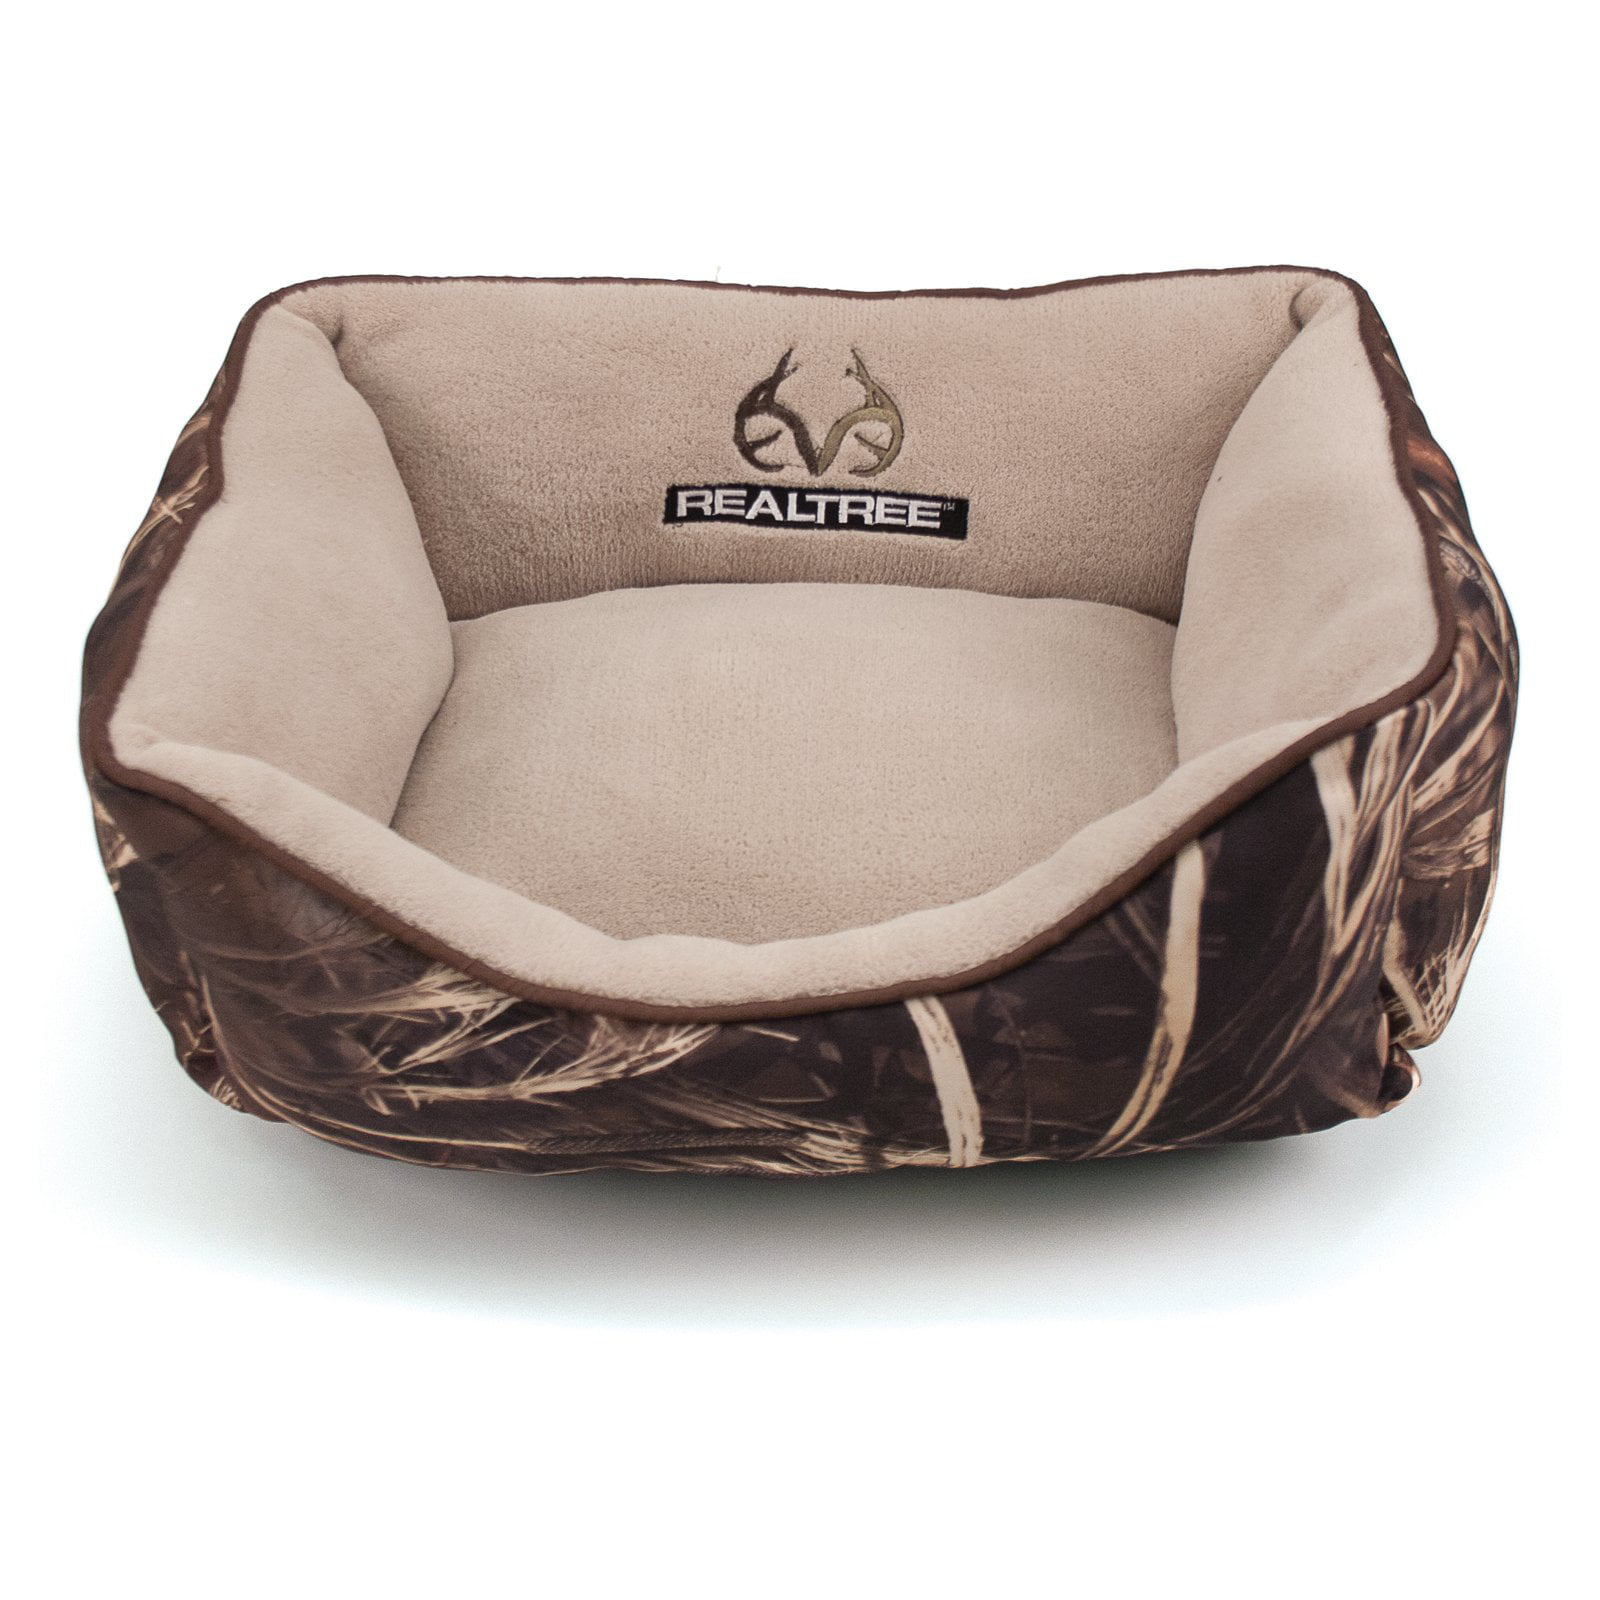 "Realtree Box Pet Bed - 18""x14"" - Camo/Brown"